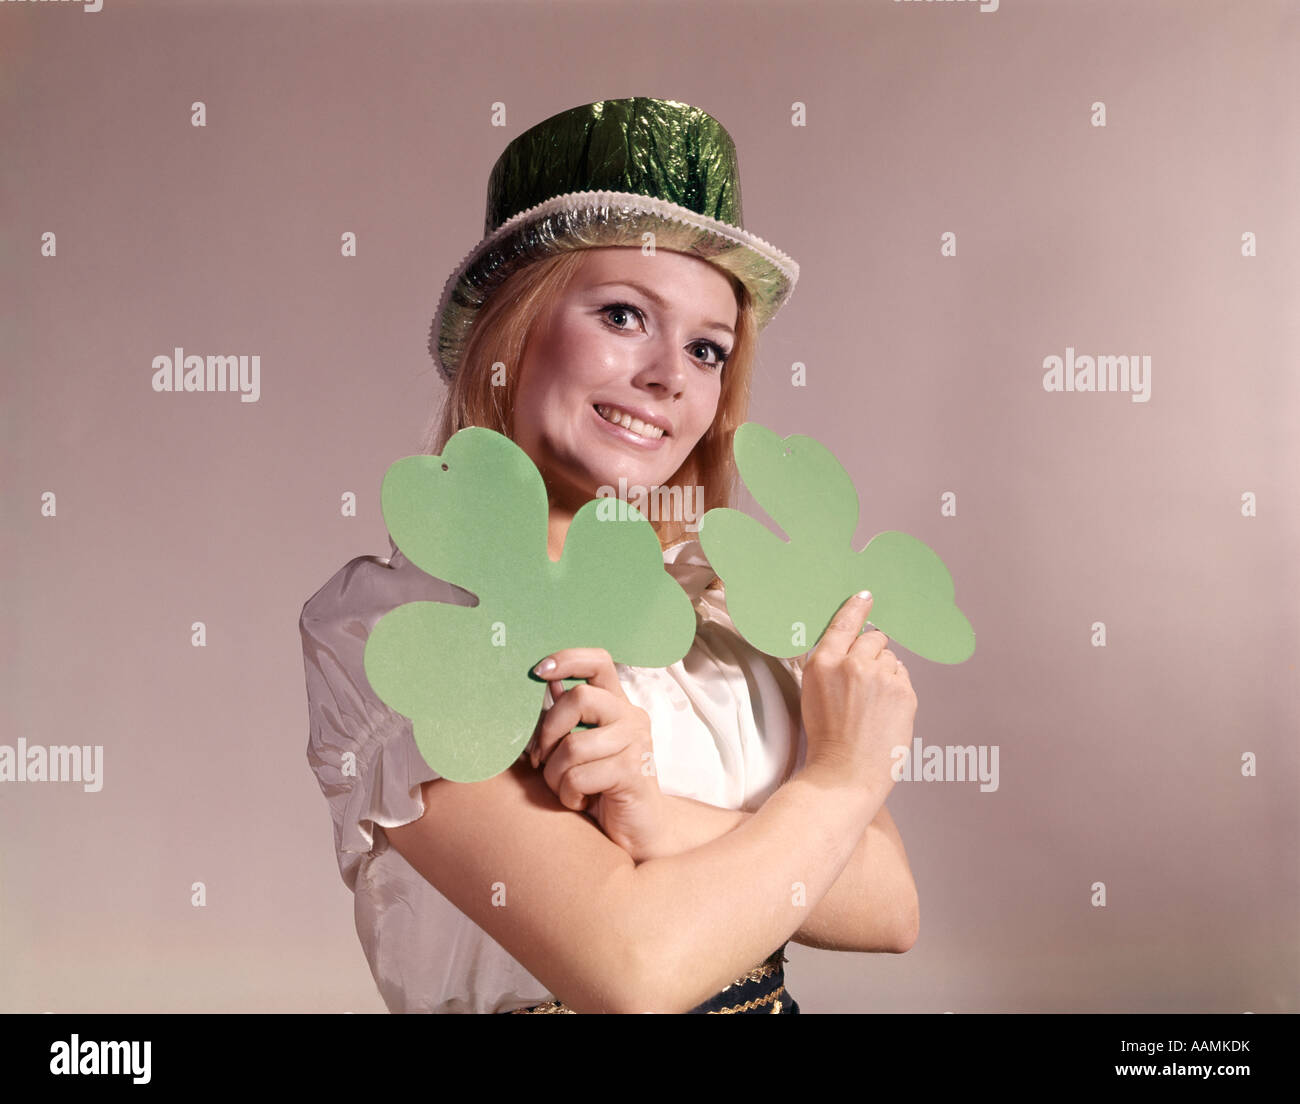 Années 1960 Années 1970 RETRO IRISH WOMAN SMILING HOLDING GREEN TRÈFLES ET WEARING GREEN PARTY HAT Photo Stock